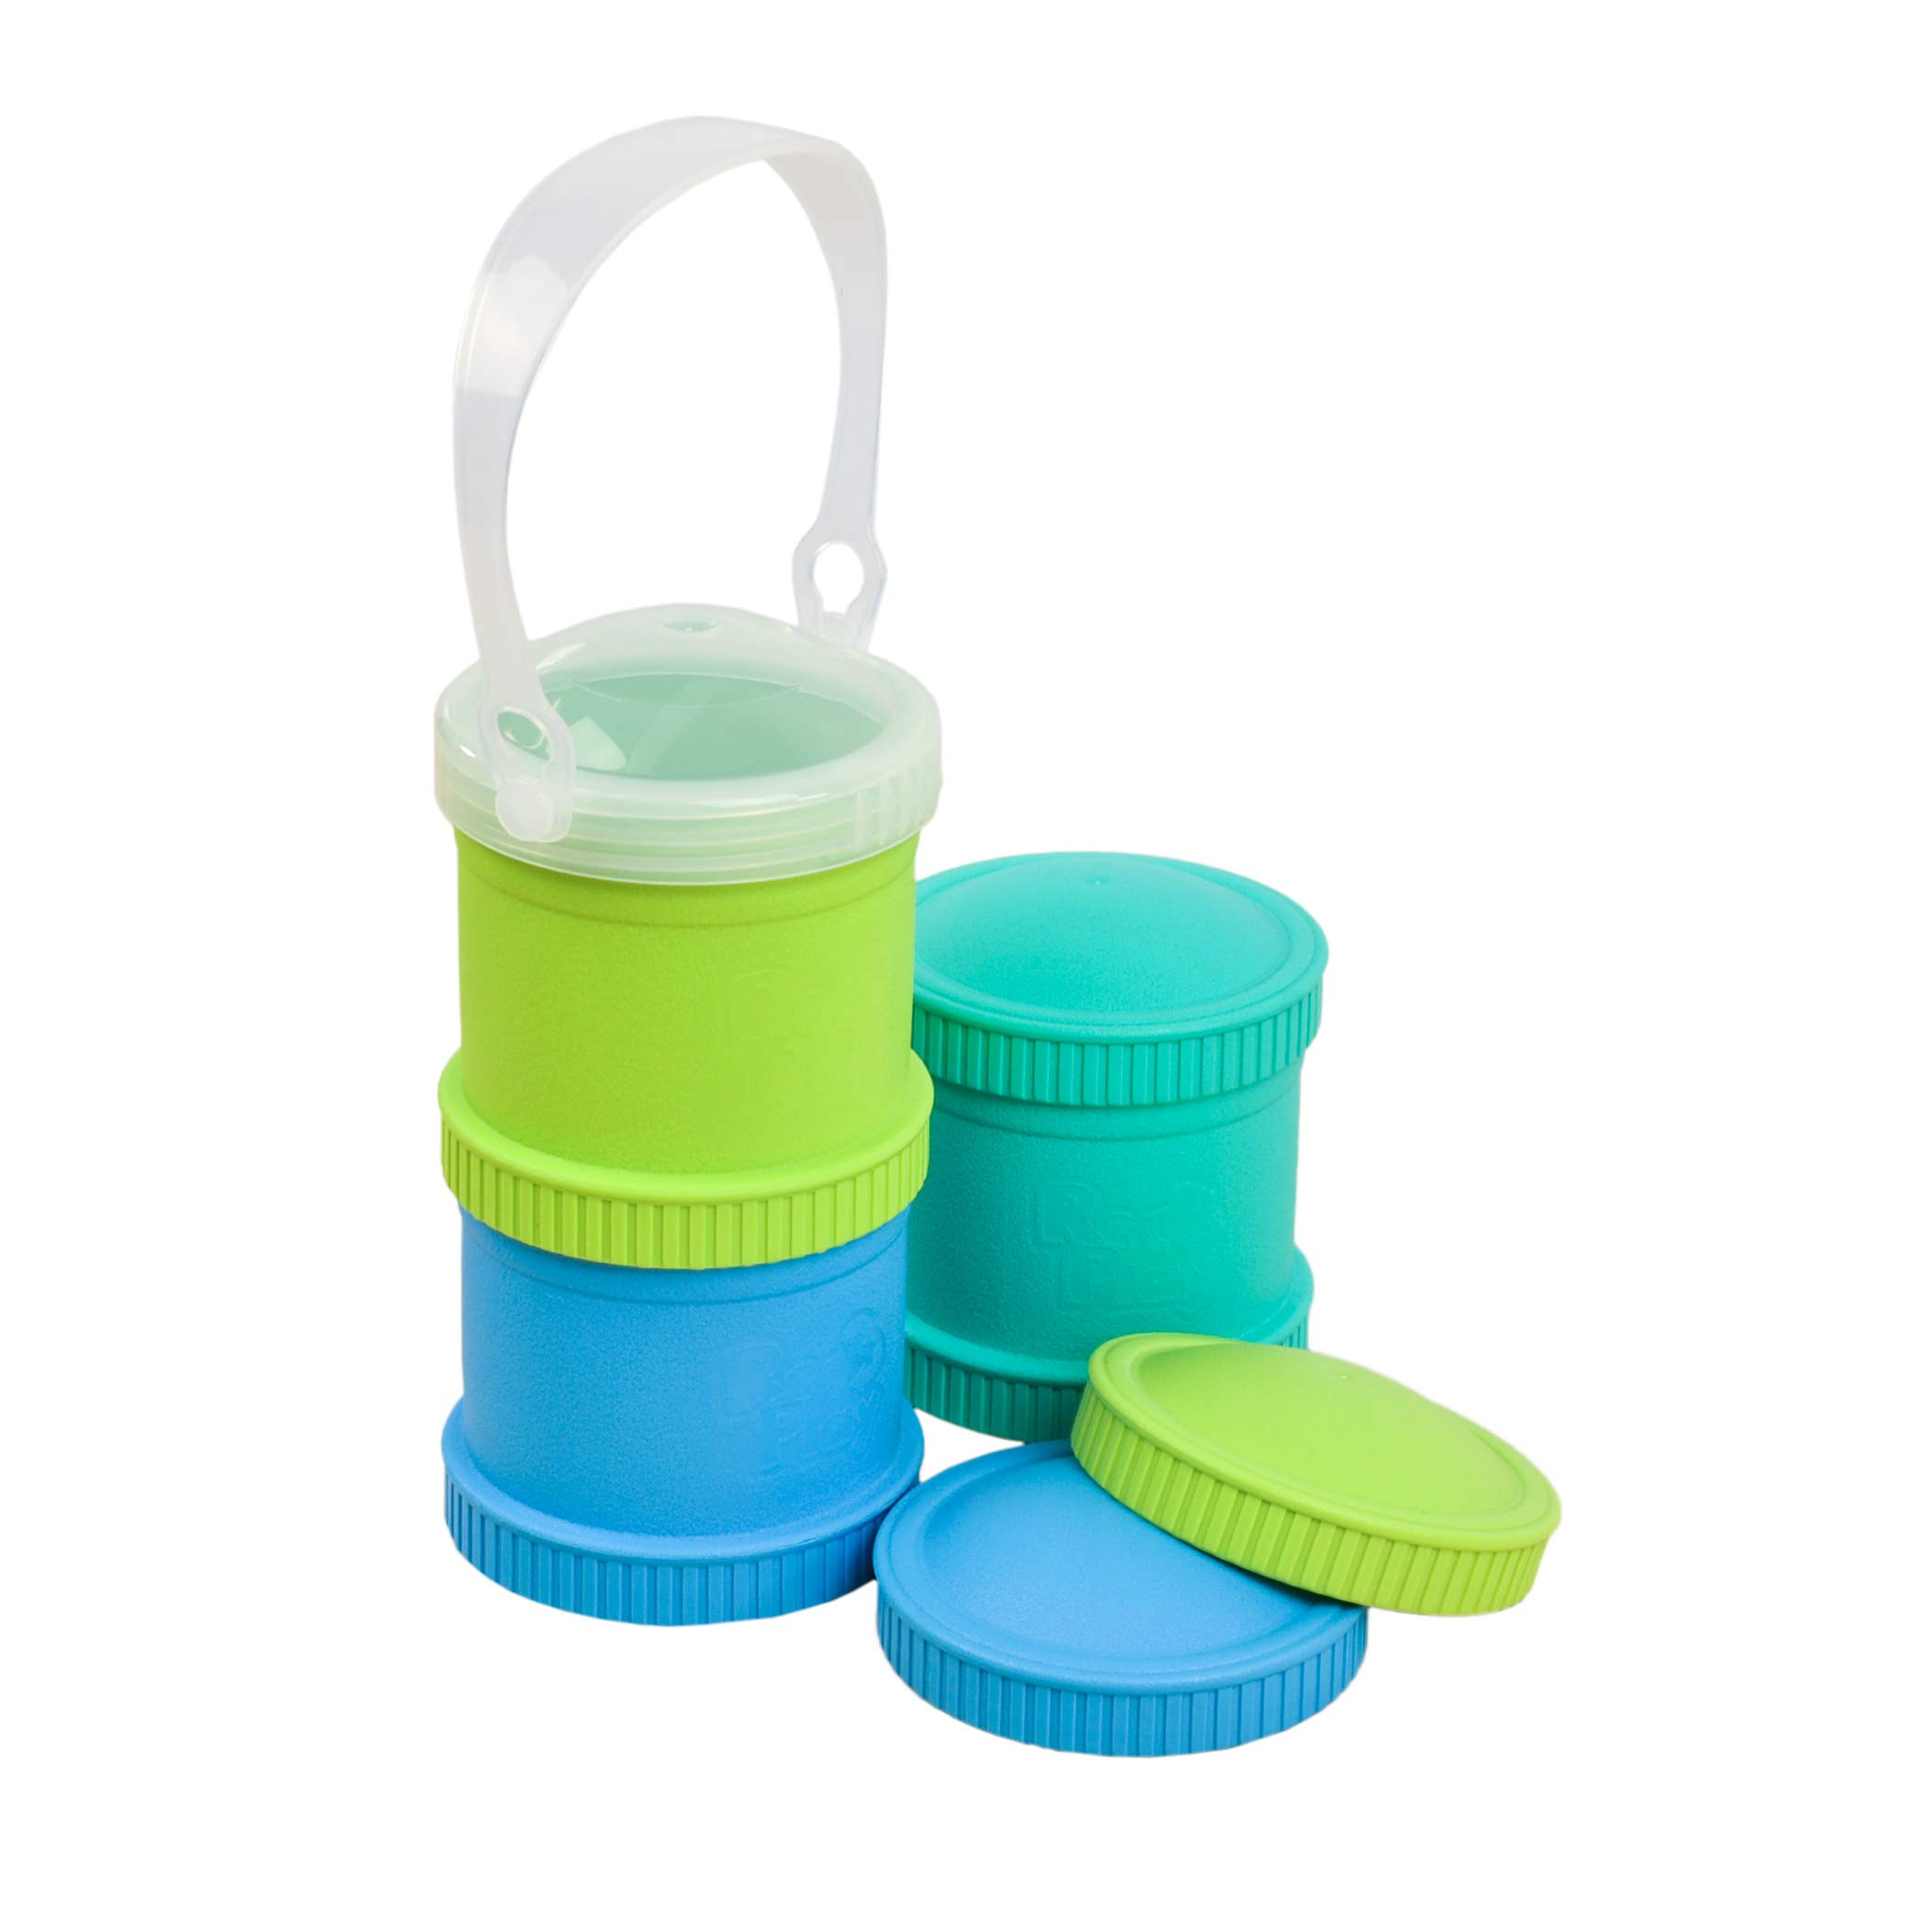 Re-Play Made in The USA 7 Piece Stackable Food and Snack Storage Containers for Babies, Toddlers and Kids of All Ages - Aqua, Green, Sky Blue (Under The Sea)